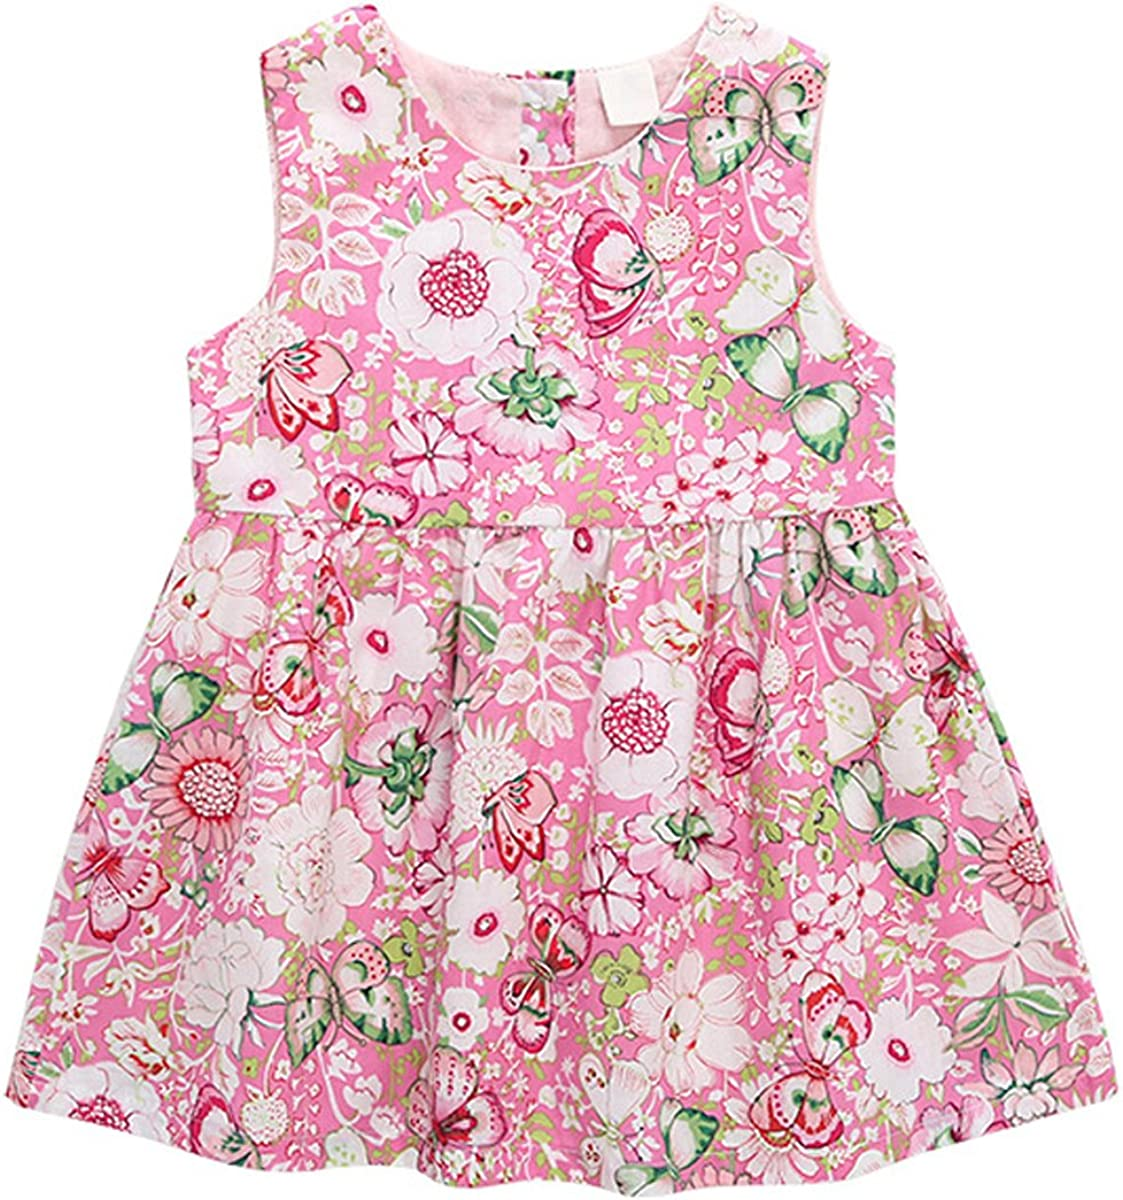 Bebone Baby Girls Princess Summer Dress Flower Print Outfit Clothes with Hat